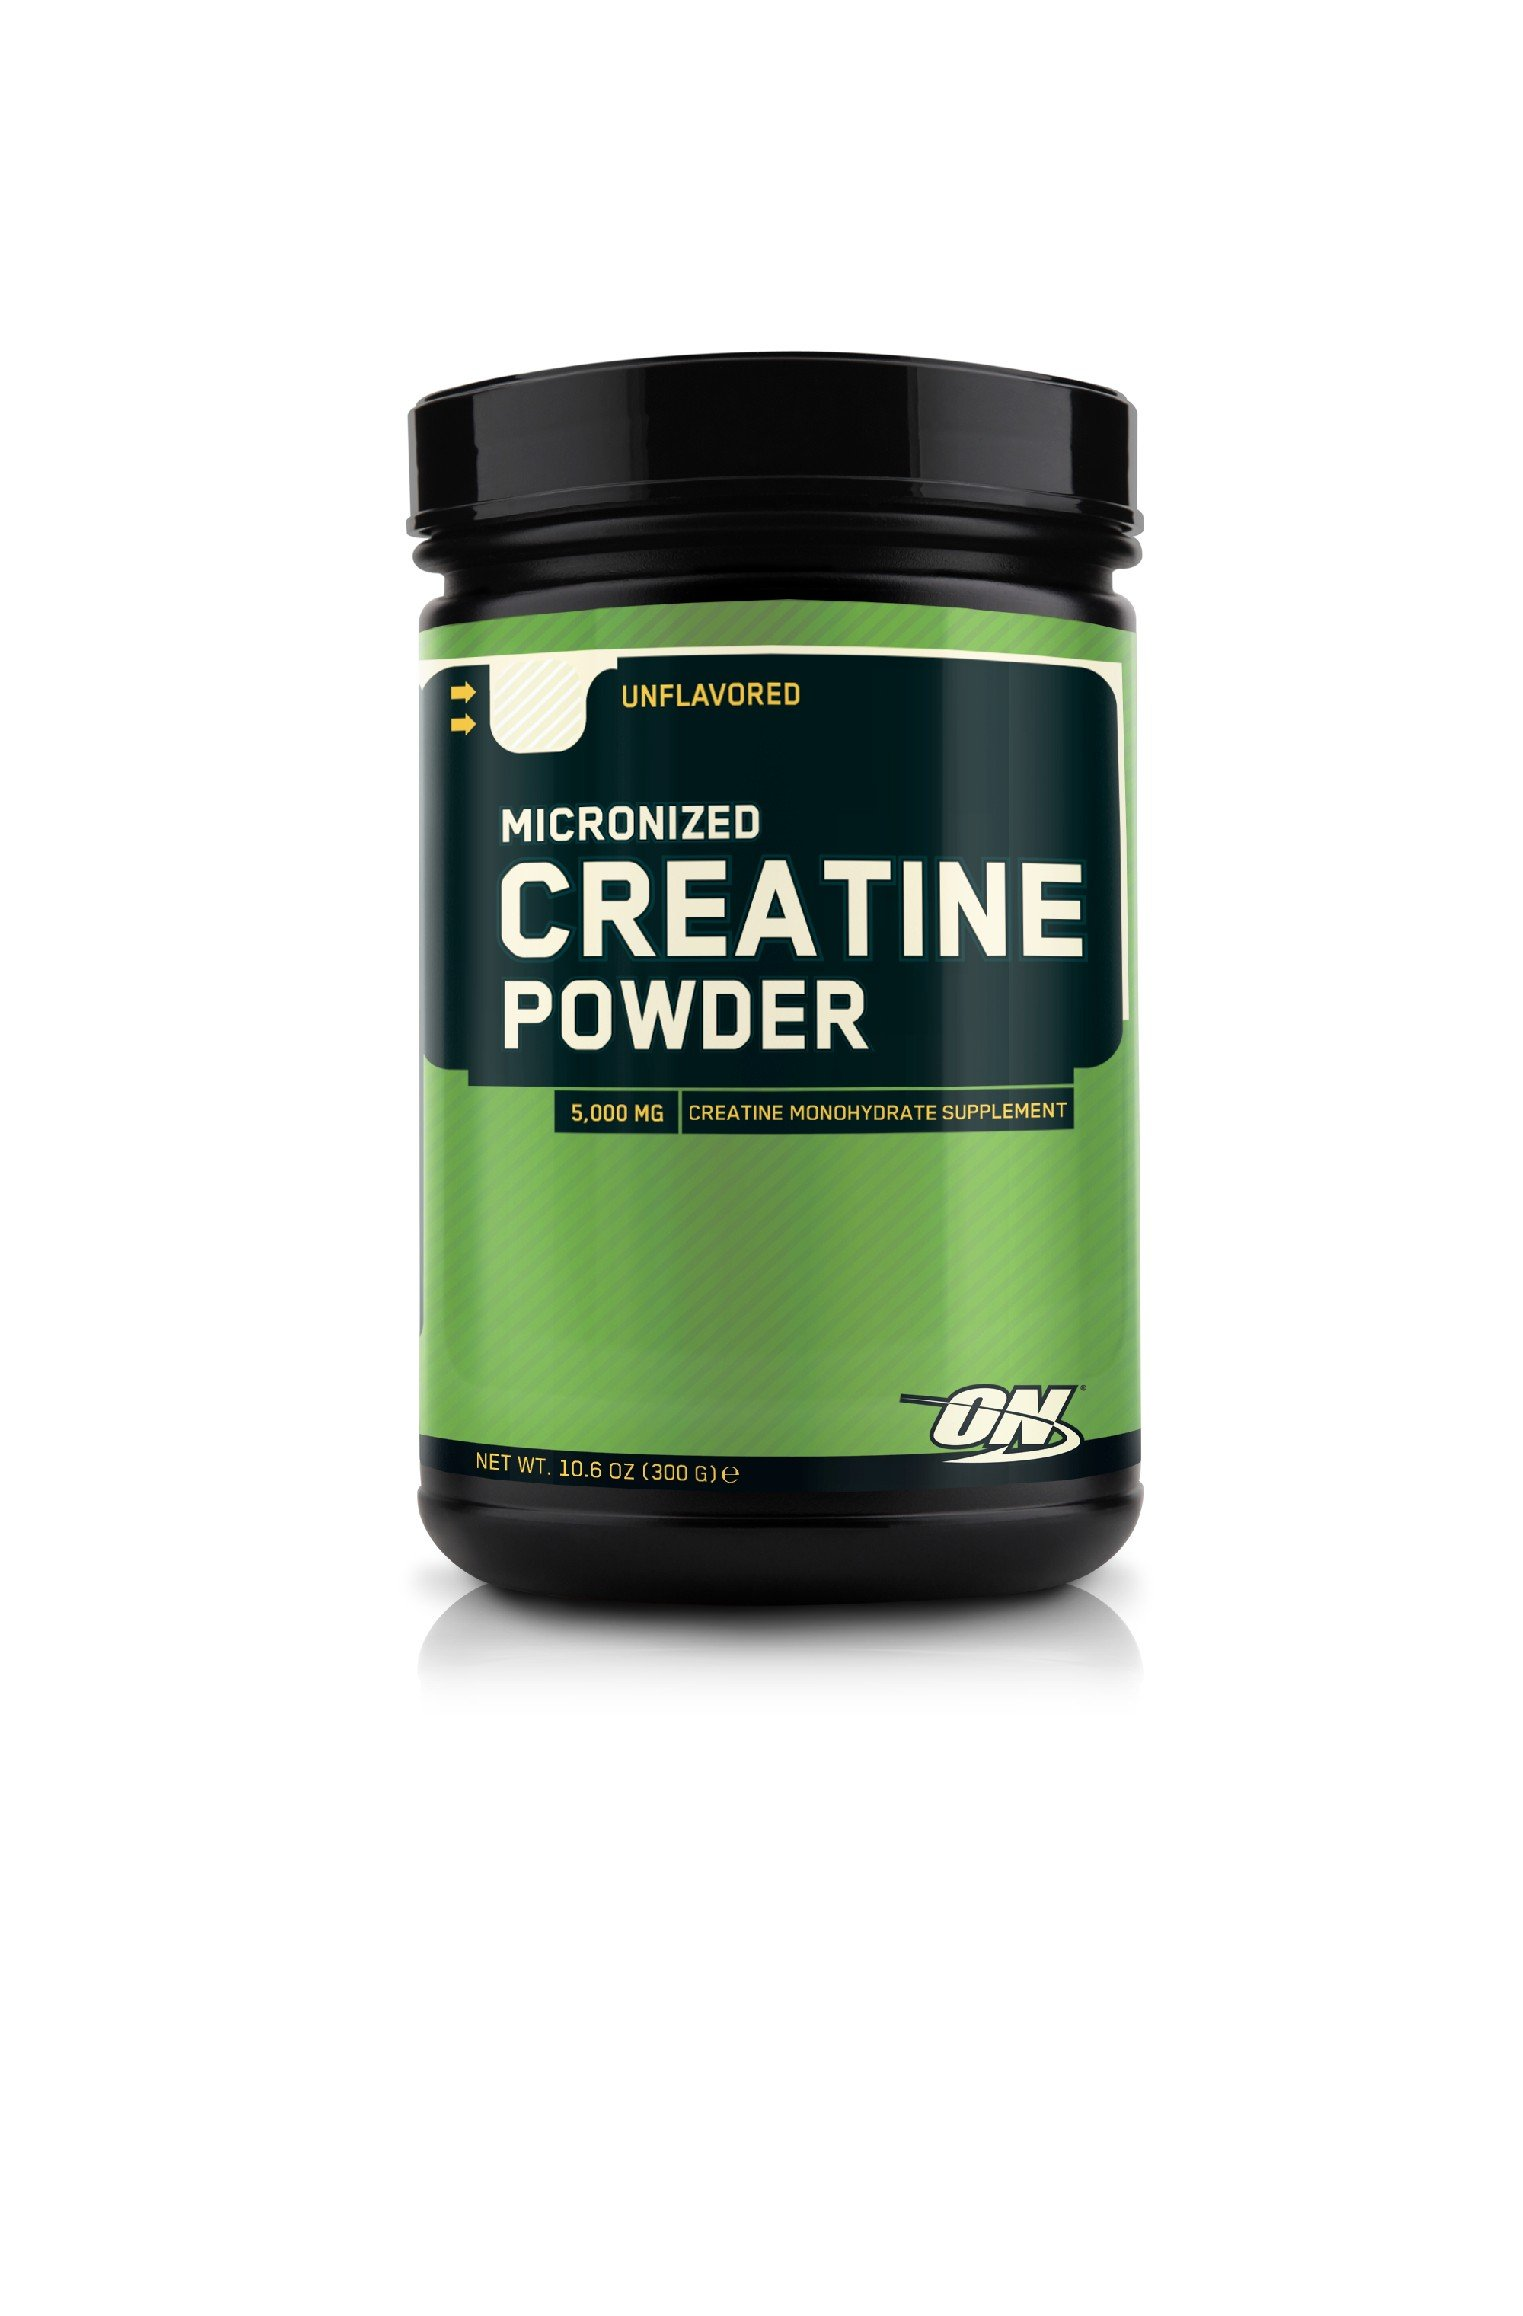 OPTIMUM NUTRITION Micronized Creatine Monohydrate Powder, Unflavored, 300g